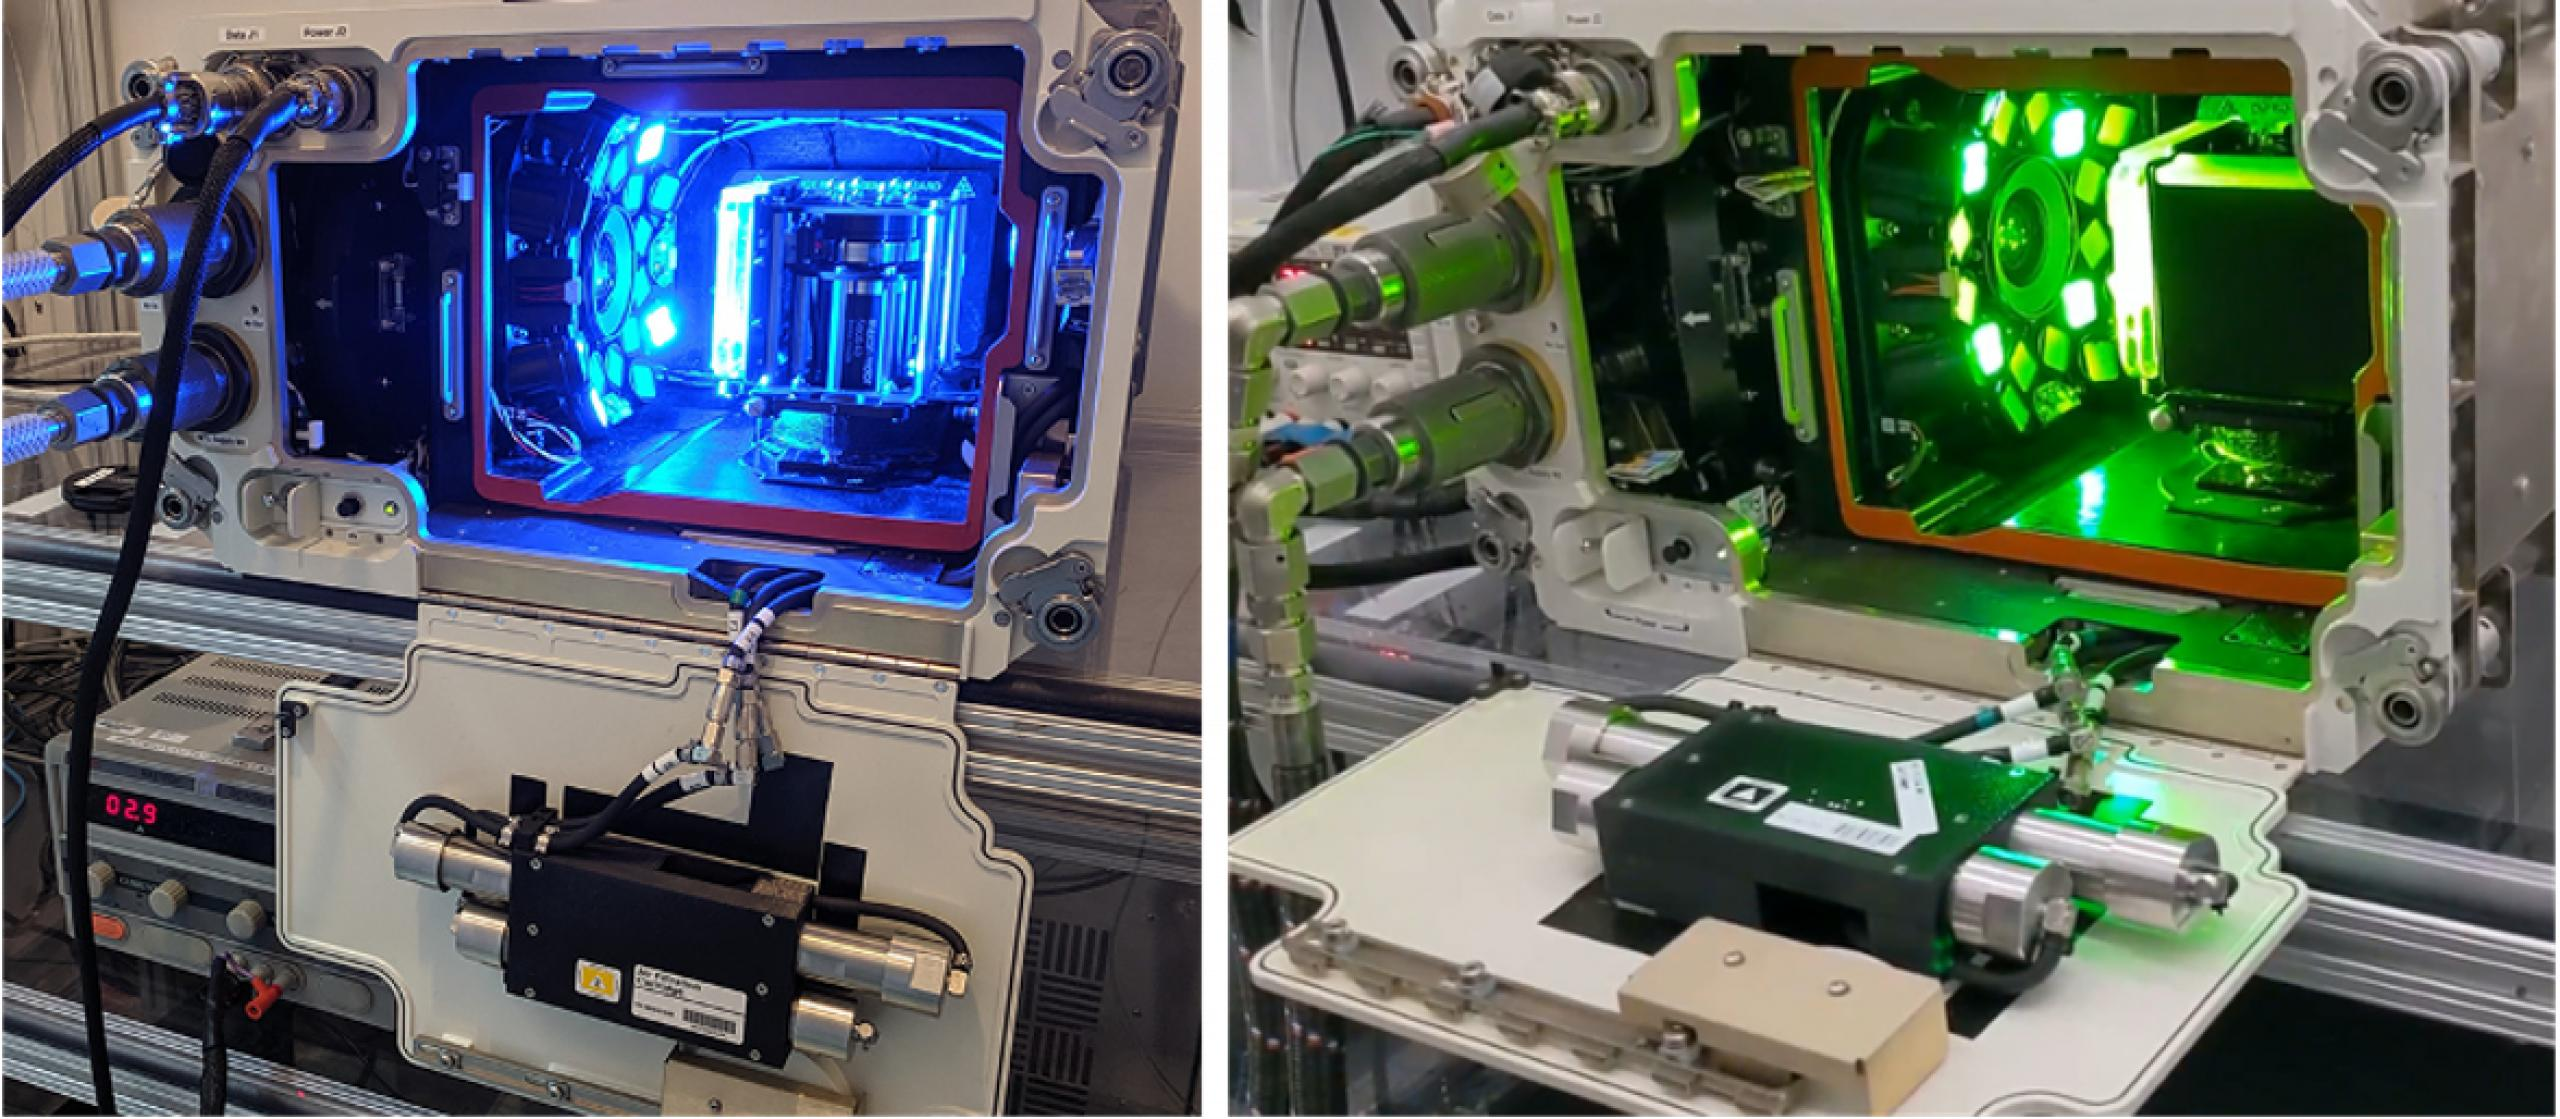 Photo on the left shows a blue light emitting out of the spectrum, photo on the right shows a green light emitting from the spectrum.